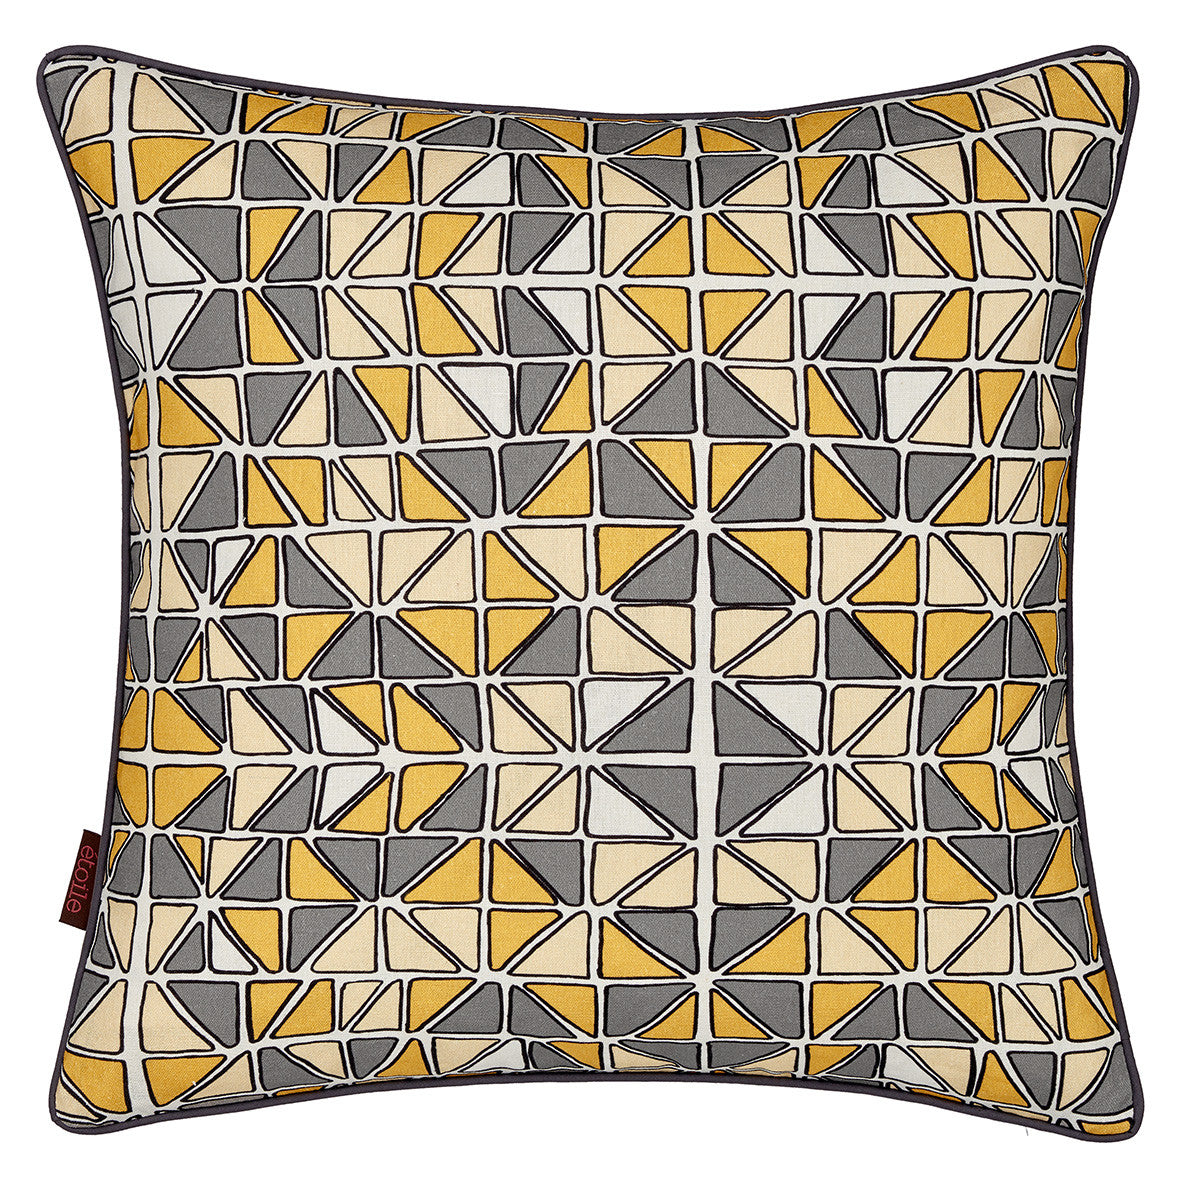 Mosaic Patterned Printed Linen Union Cushion in Maize Yellow, Grey and Straw